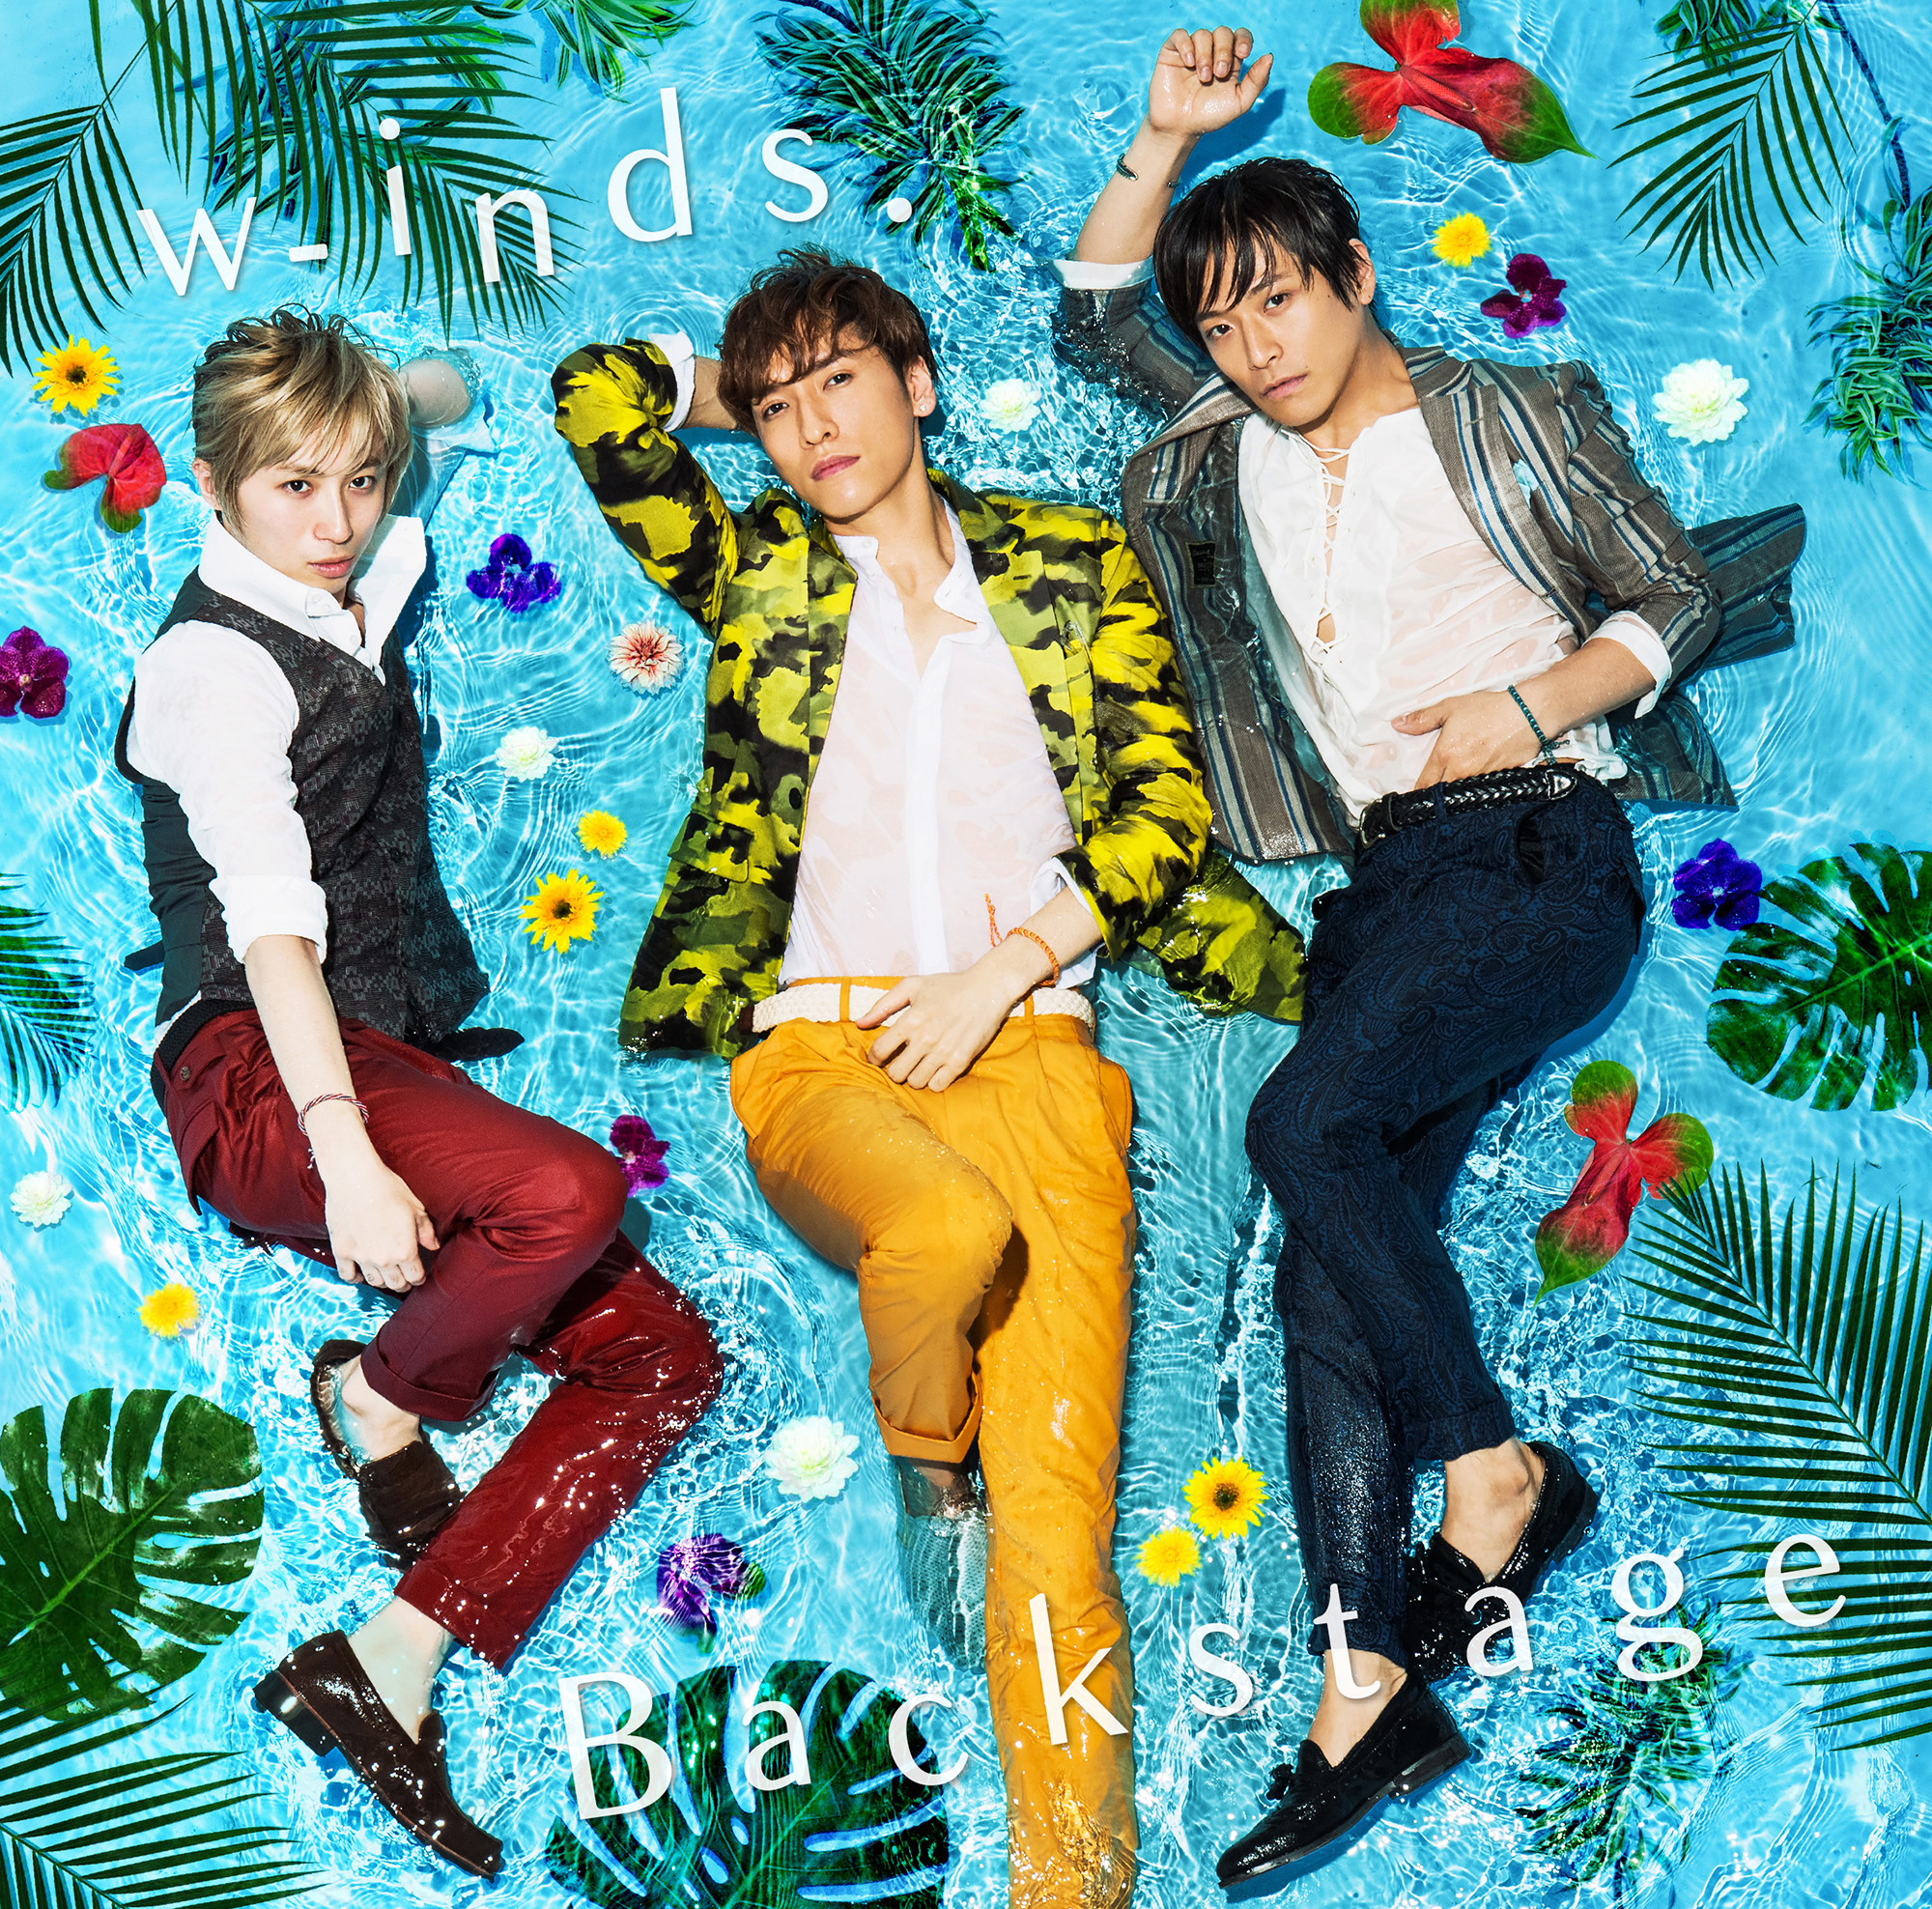 w-inds.「Backstage」通常盤